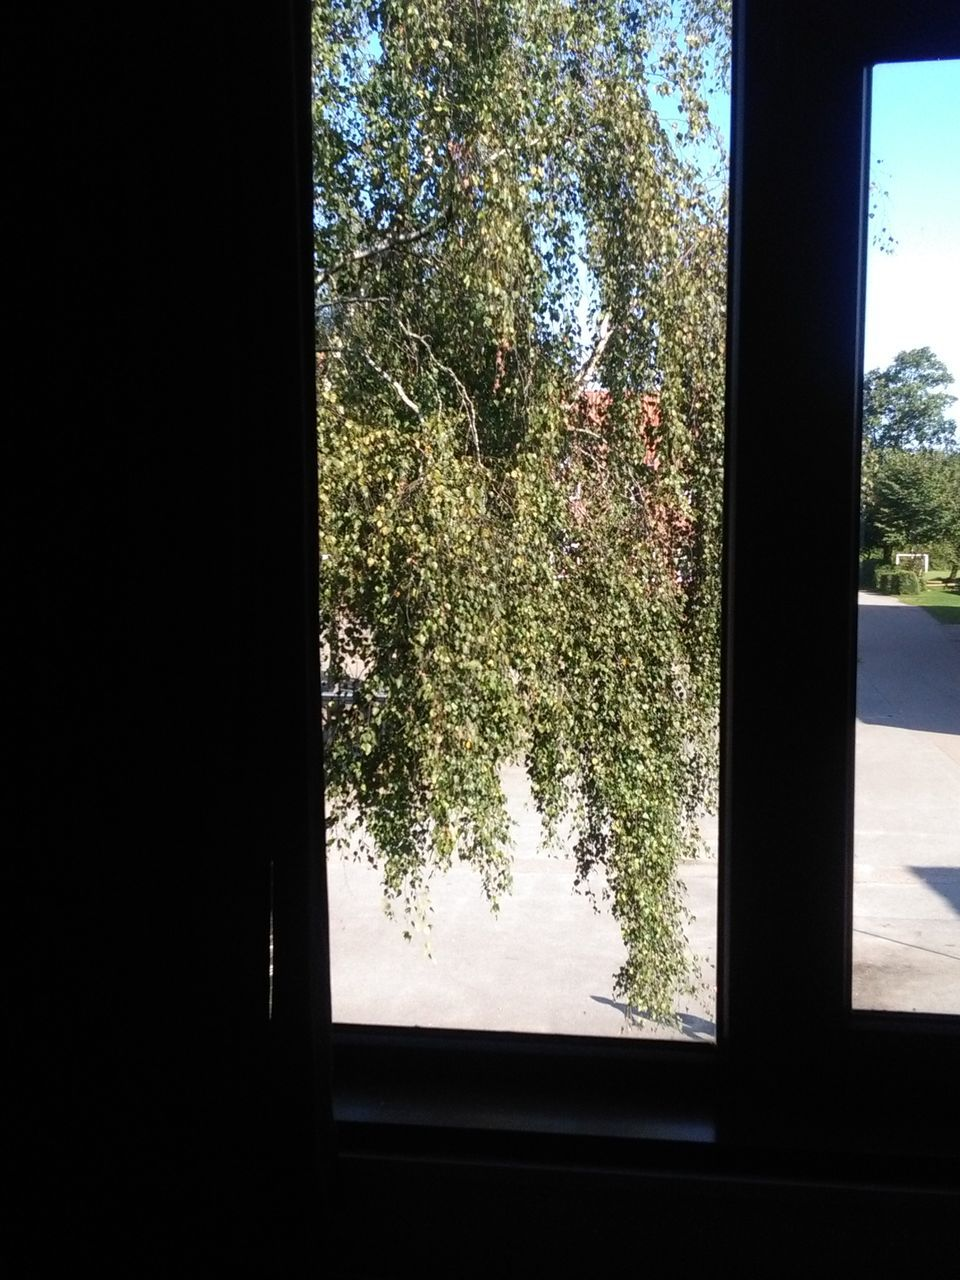 window, tree, glass - material, indoors, growth, no people, nature, day, looking through window, sky, branch, close-up, beauty in nature